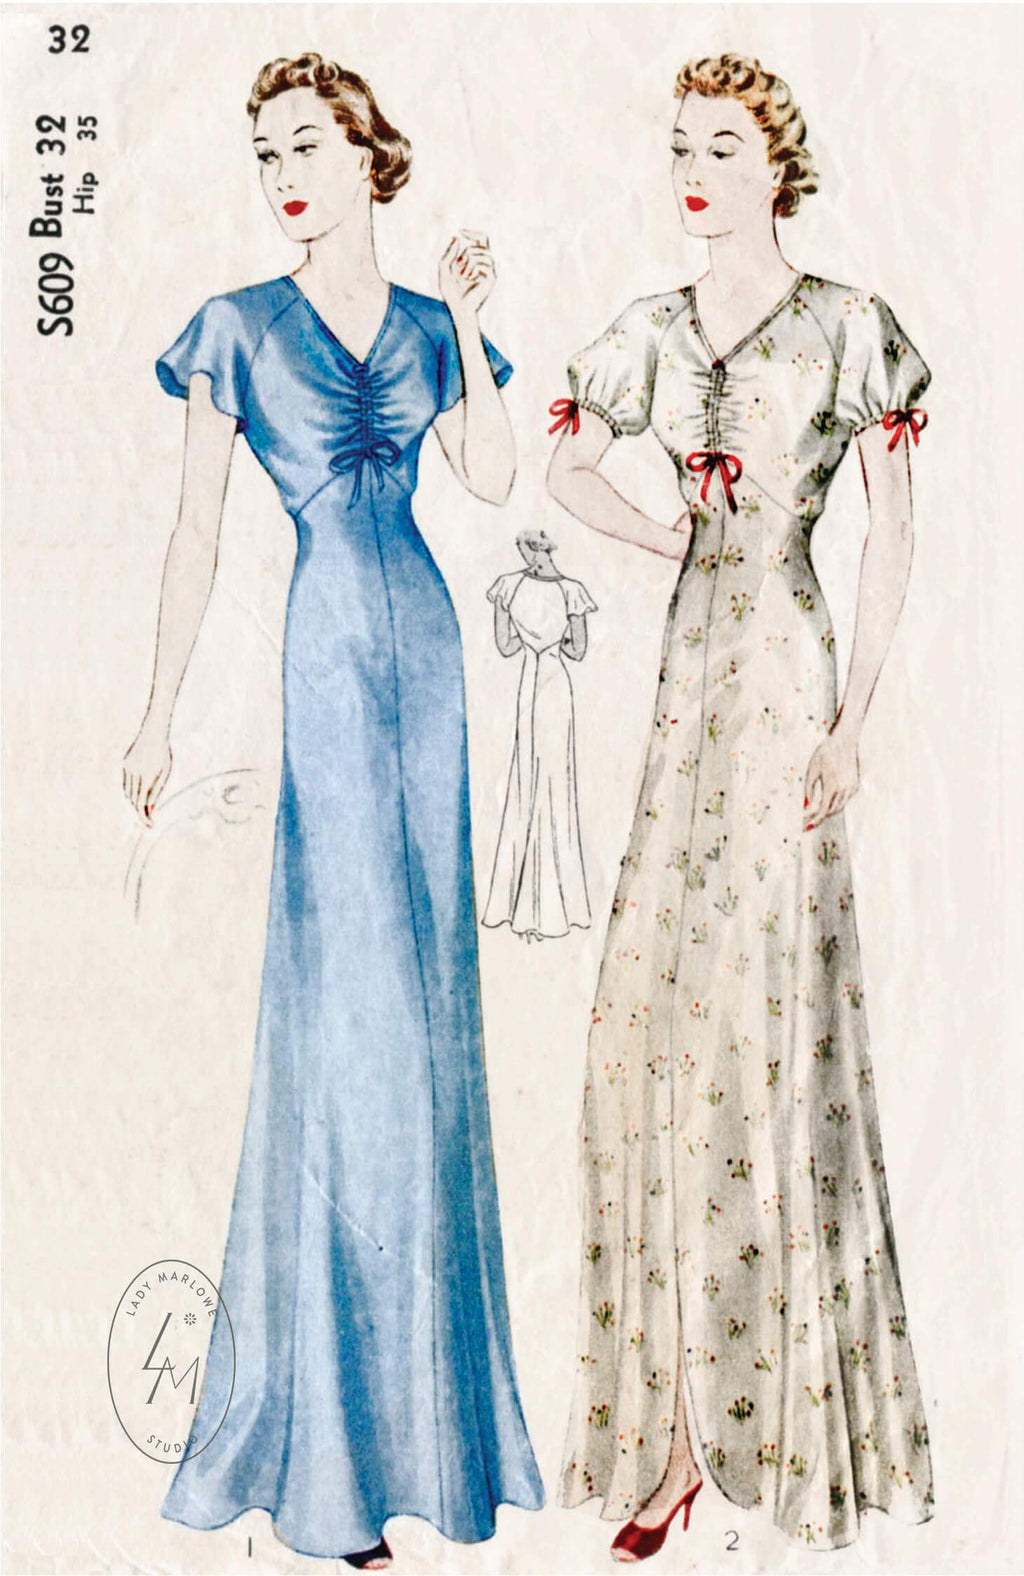 Simplicity S609 1930s vintage lingerie sewing pattern negligee gown